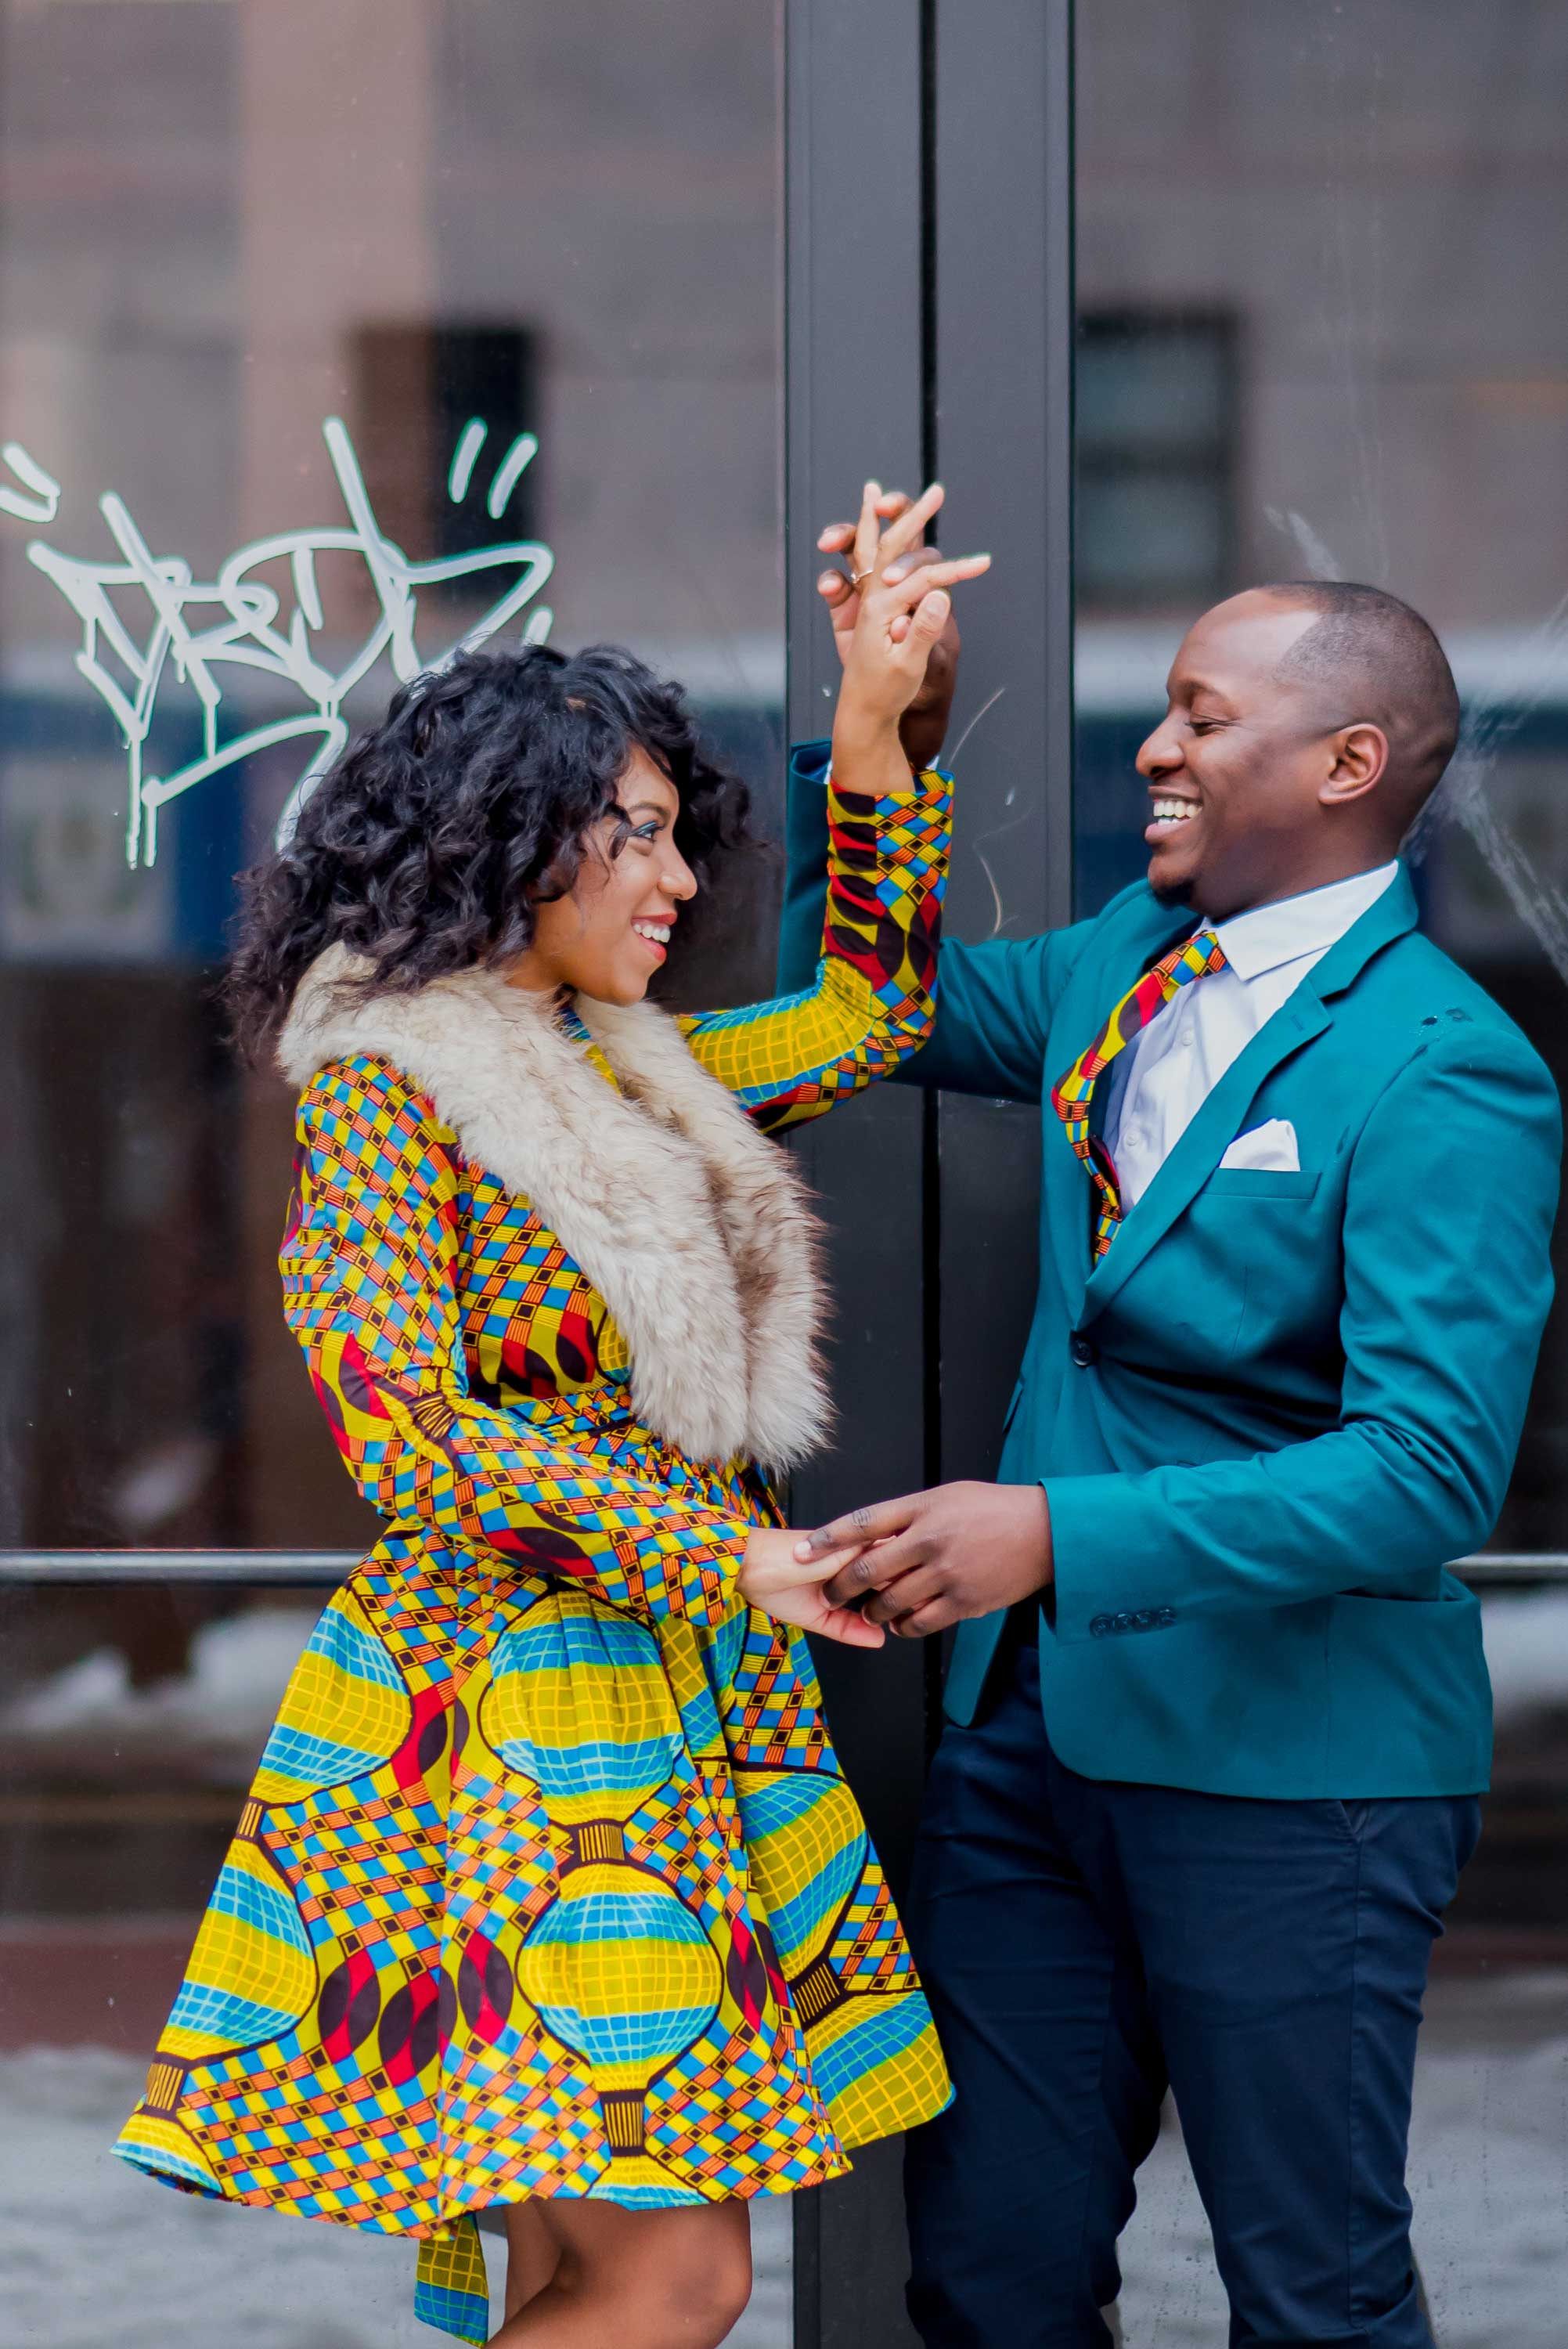 Bride and groom to be hold hands engaged photo session engagement shoot new york city graffiti door